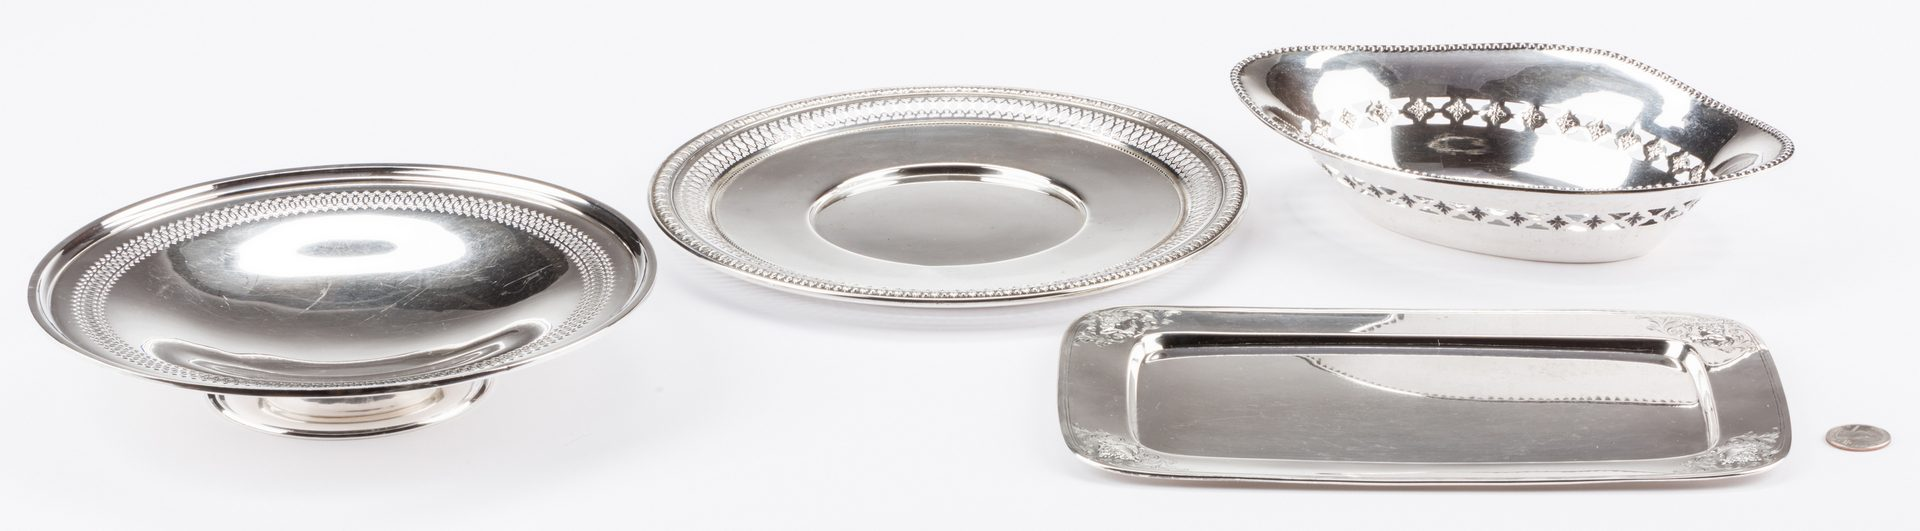 Lot 690: 4 Silver Serving Items, inc. Sterling